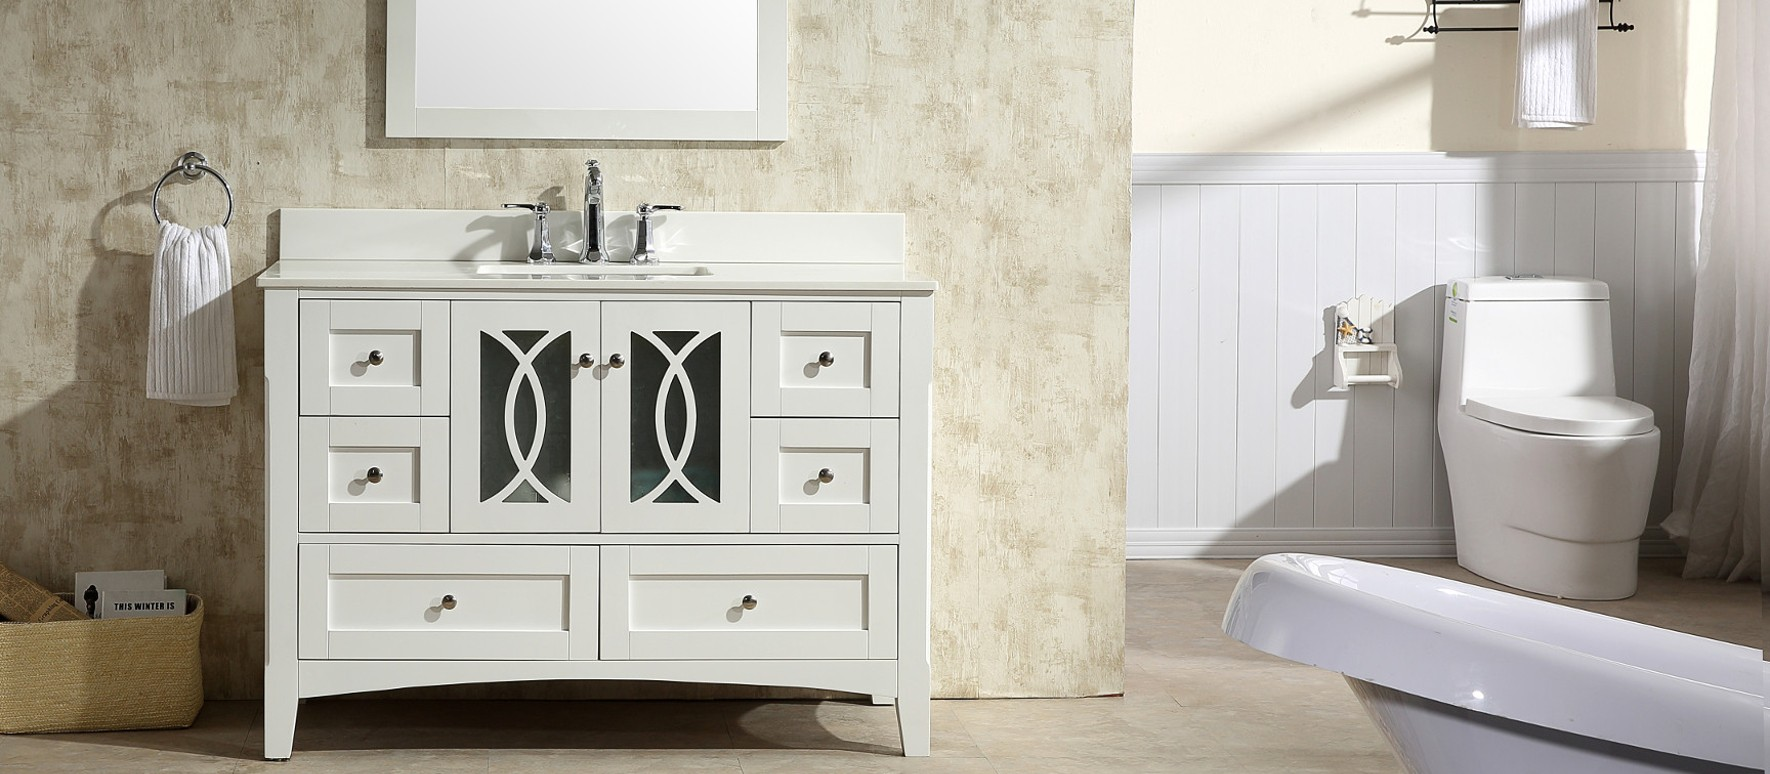 Custom Bathroom Vanities Vaughan toronto vanities, bathroom vanity, acrylic bathtubs, solid surfce